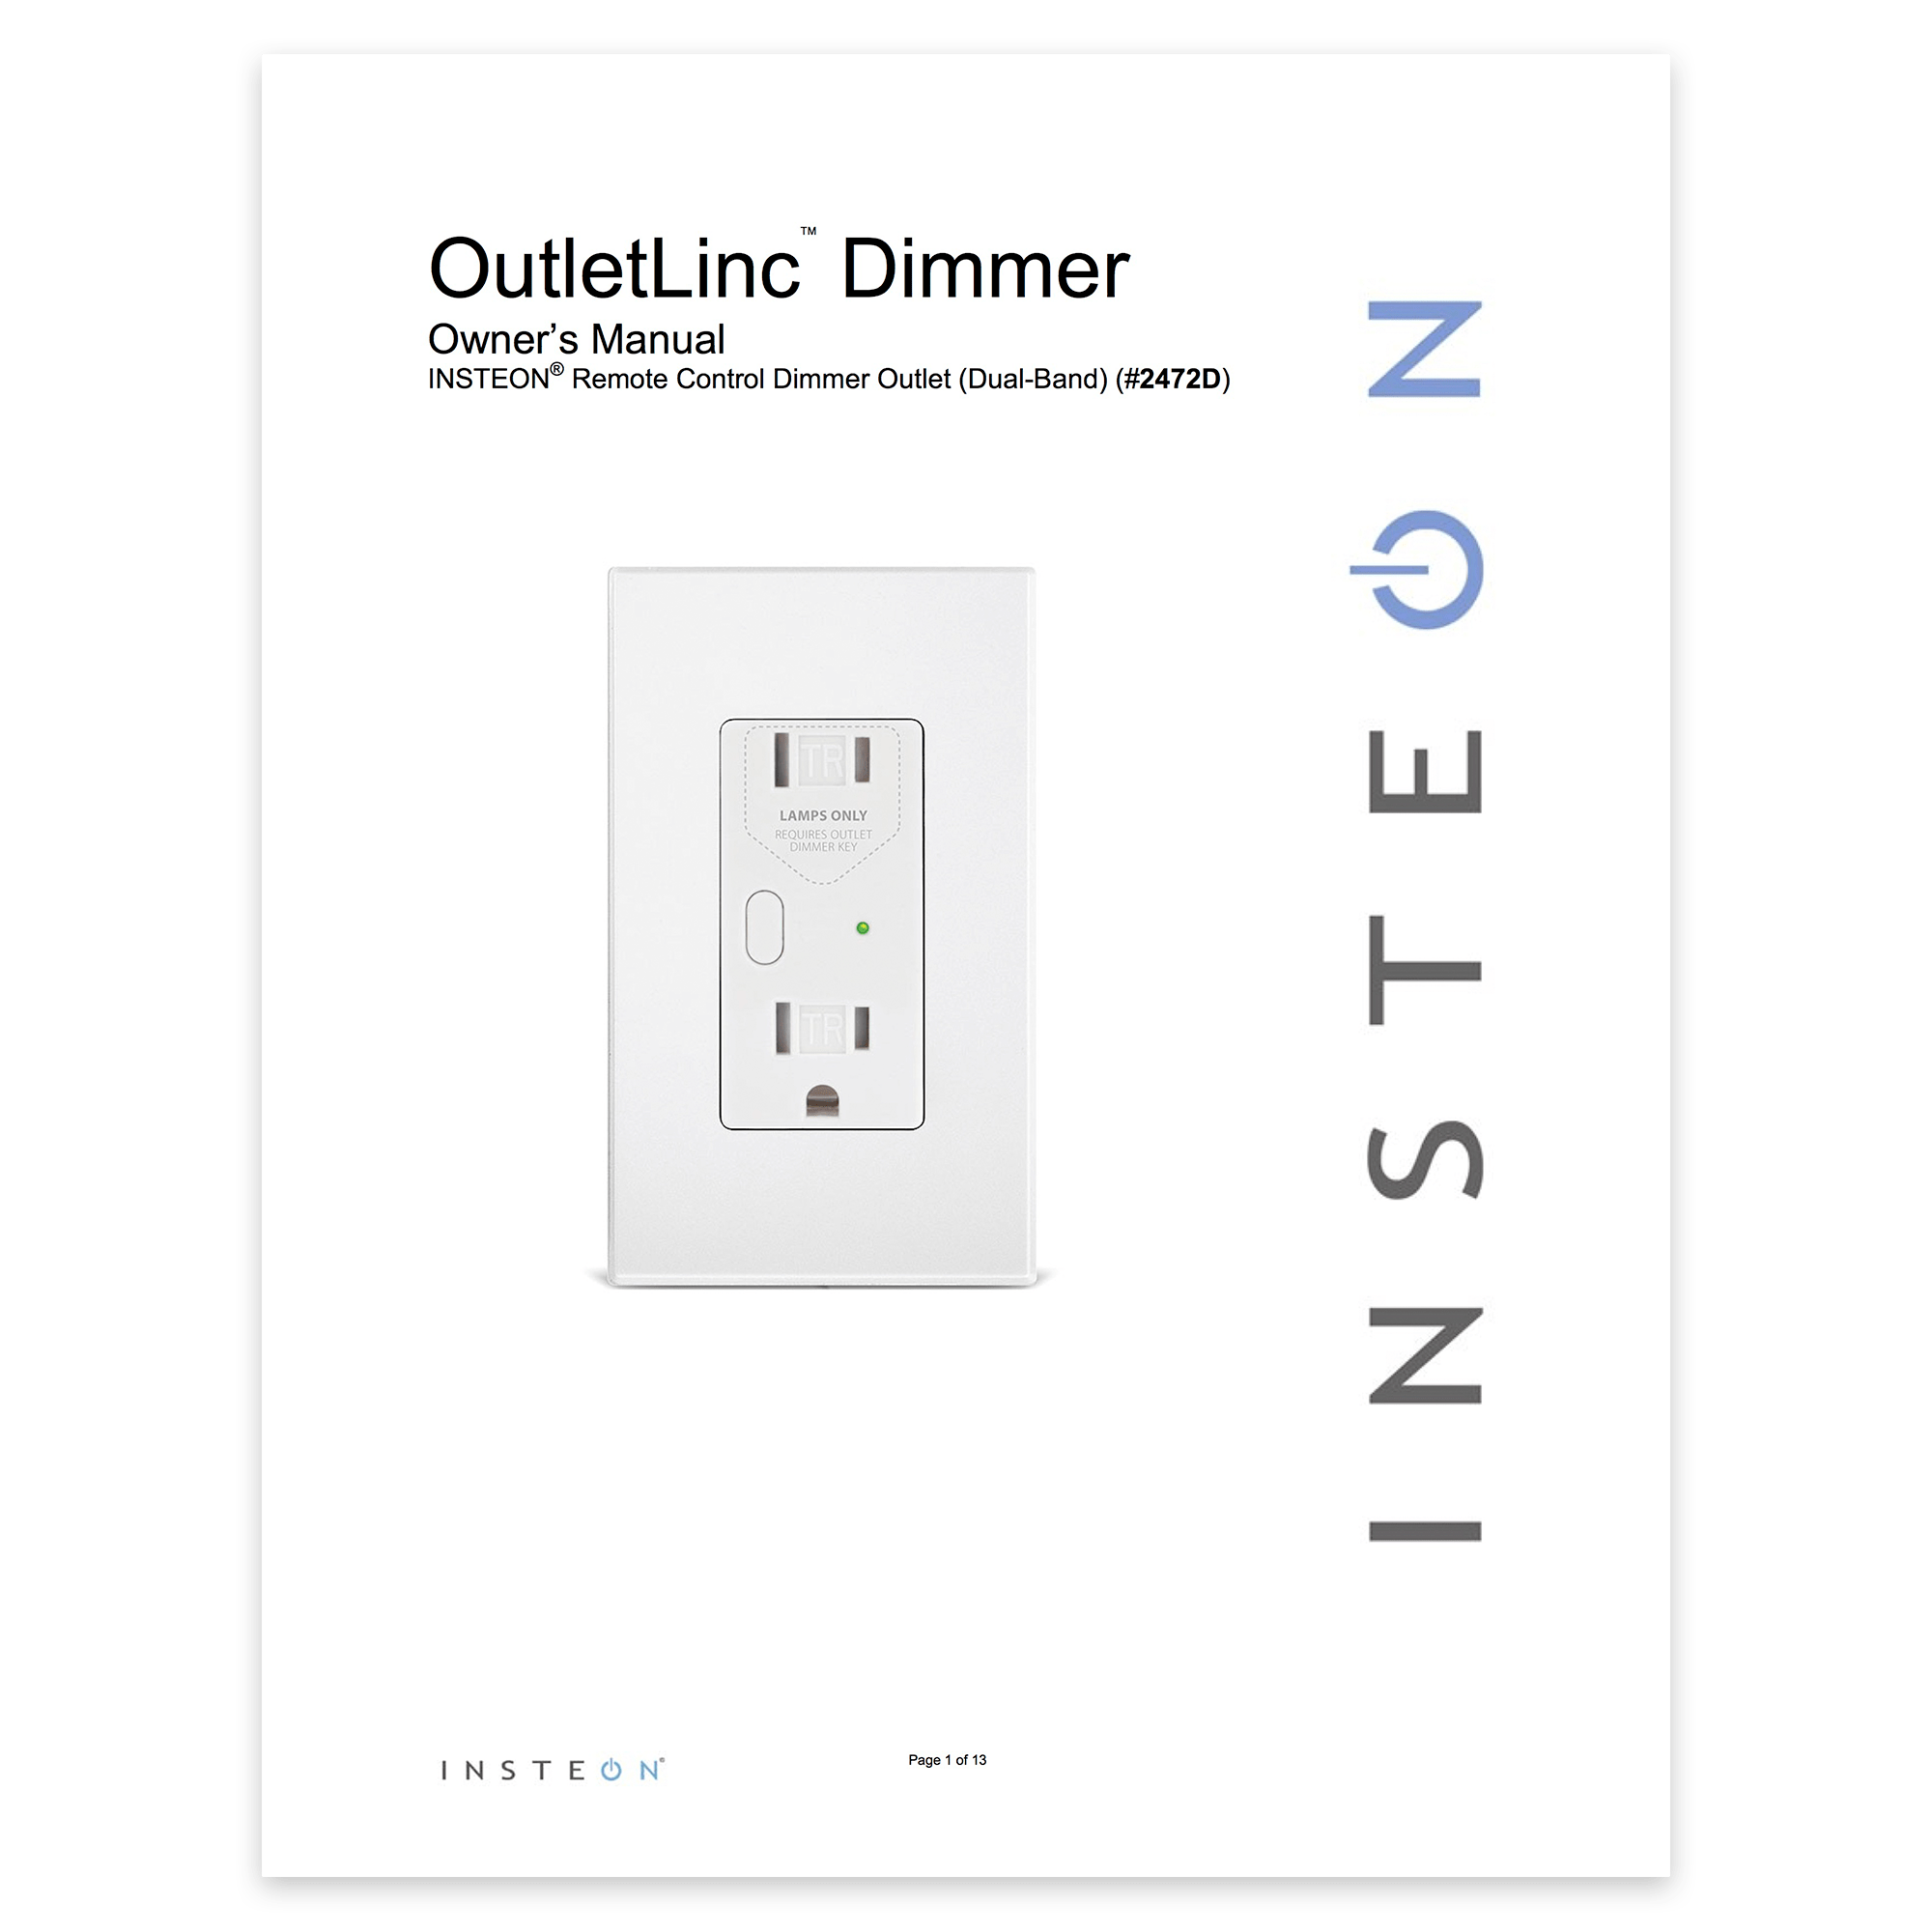 Dimmer Outlet Setup